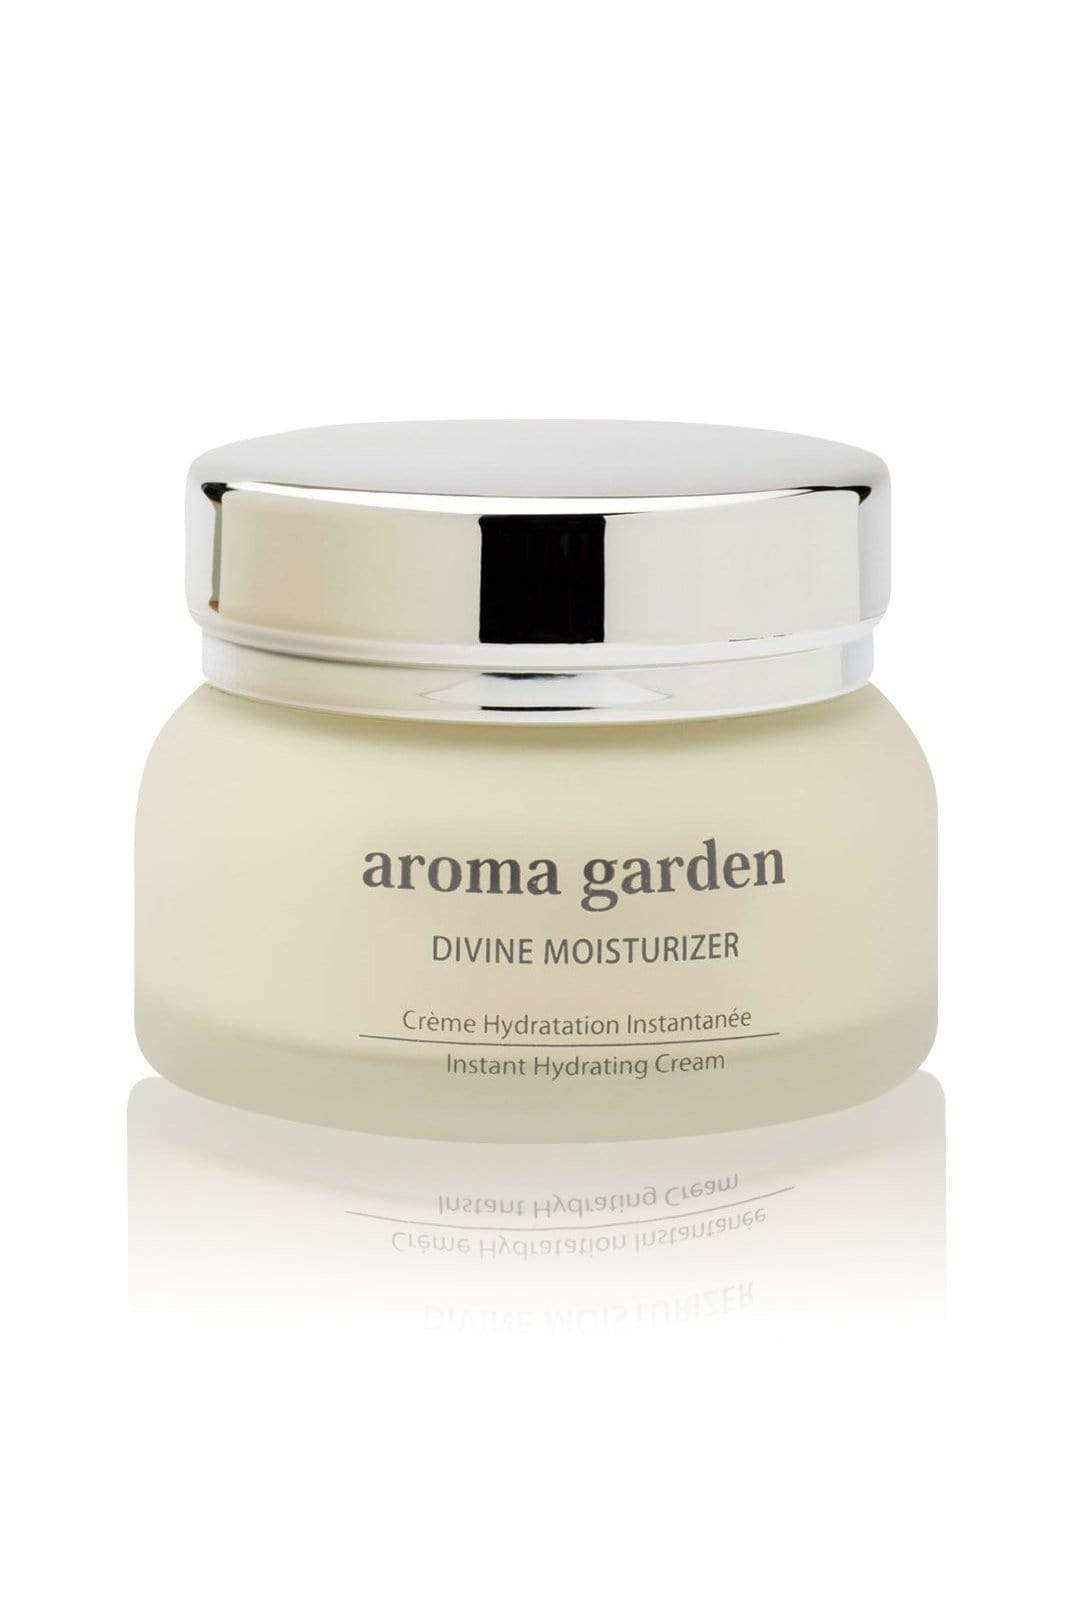 aroma garden cream Divine Moisturizer. sustainable fashion ethical fashion